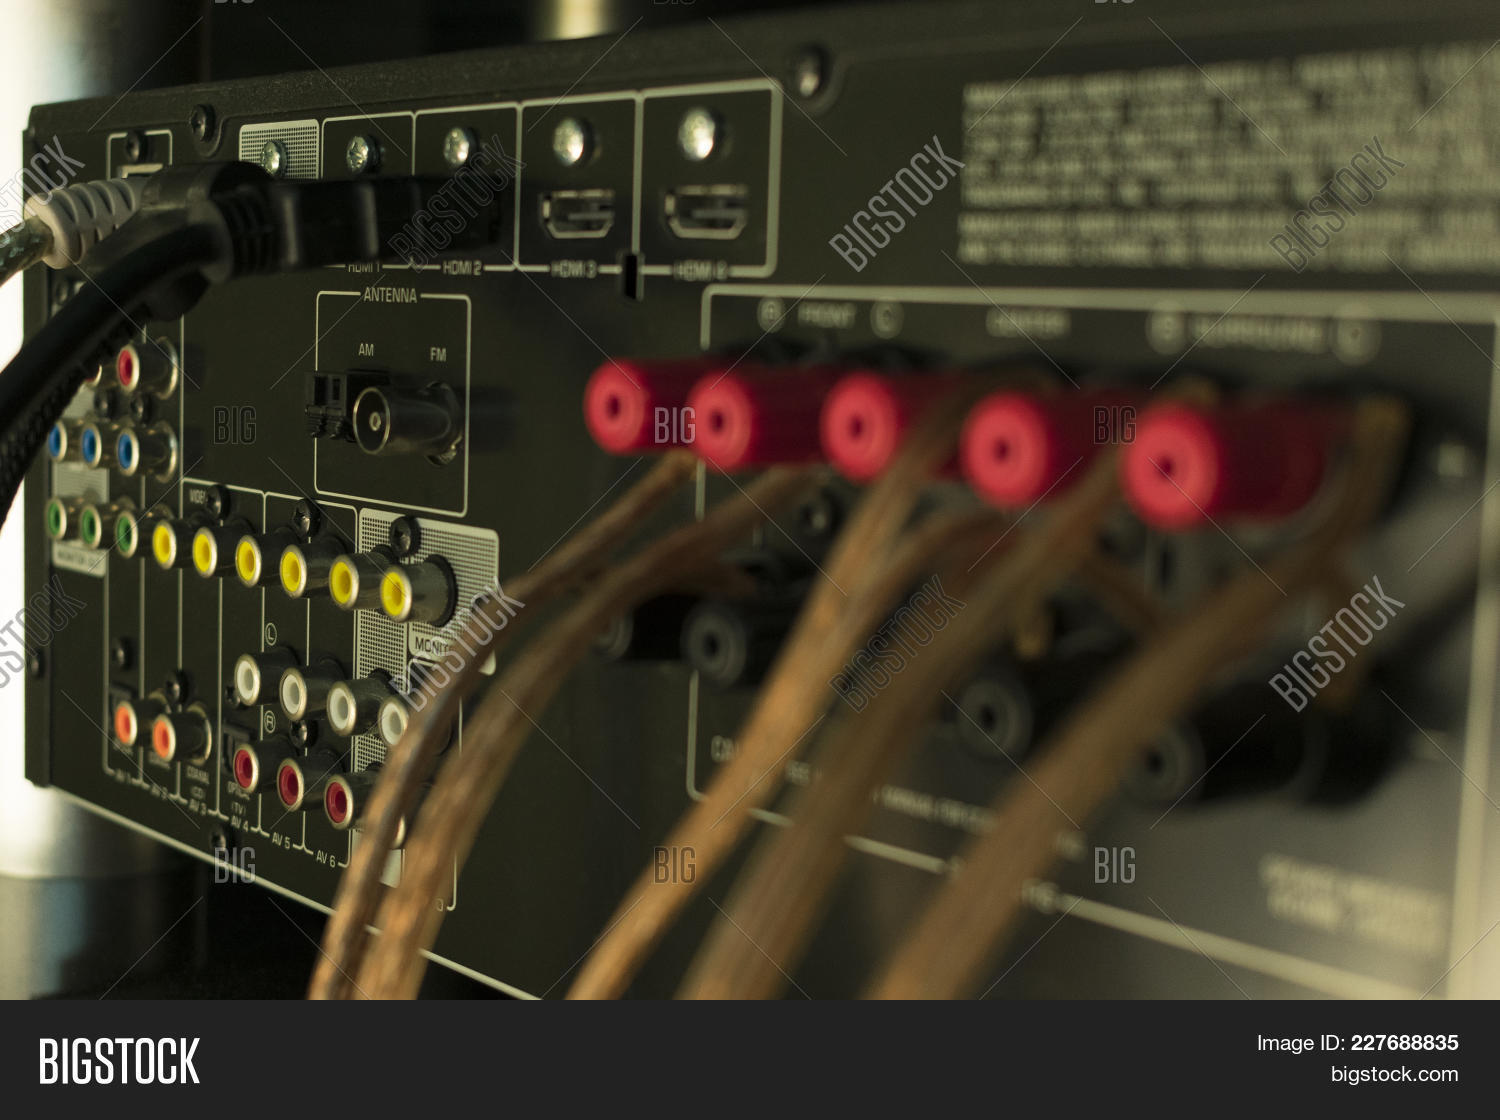 Back Audio Receiver Image Photo Free Trial Bigstock Wiring Home Equipment Of Video For Theater With Inputs Connecting And Output To